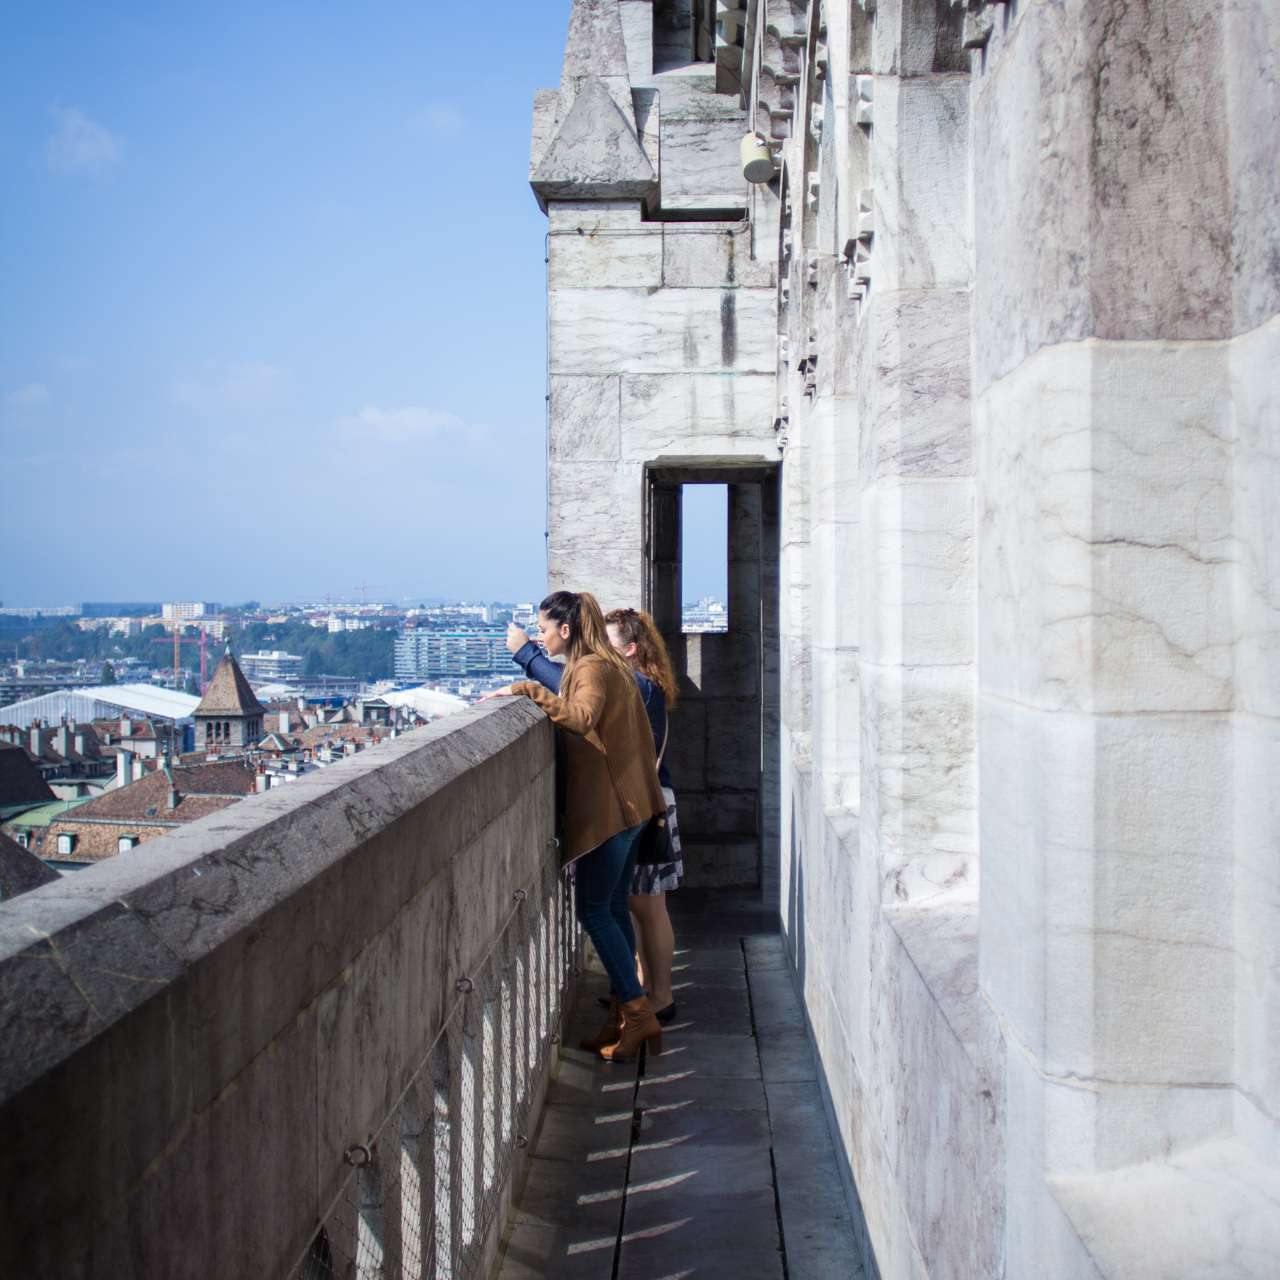 People standing on the roof of St. Pierre Cathedral, looking at the city below